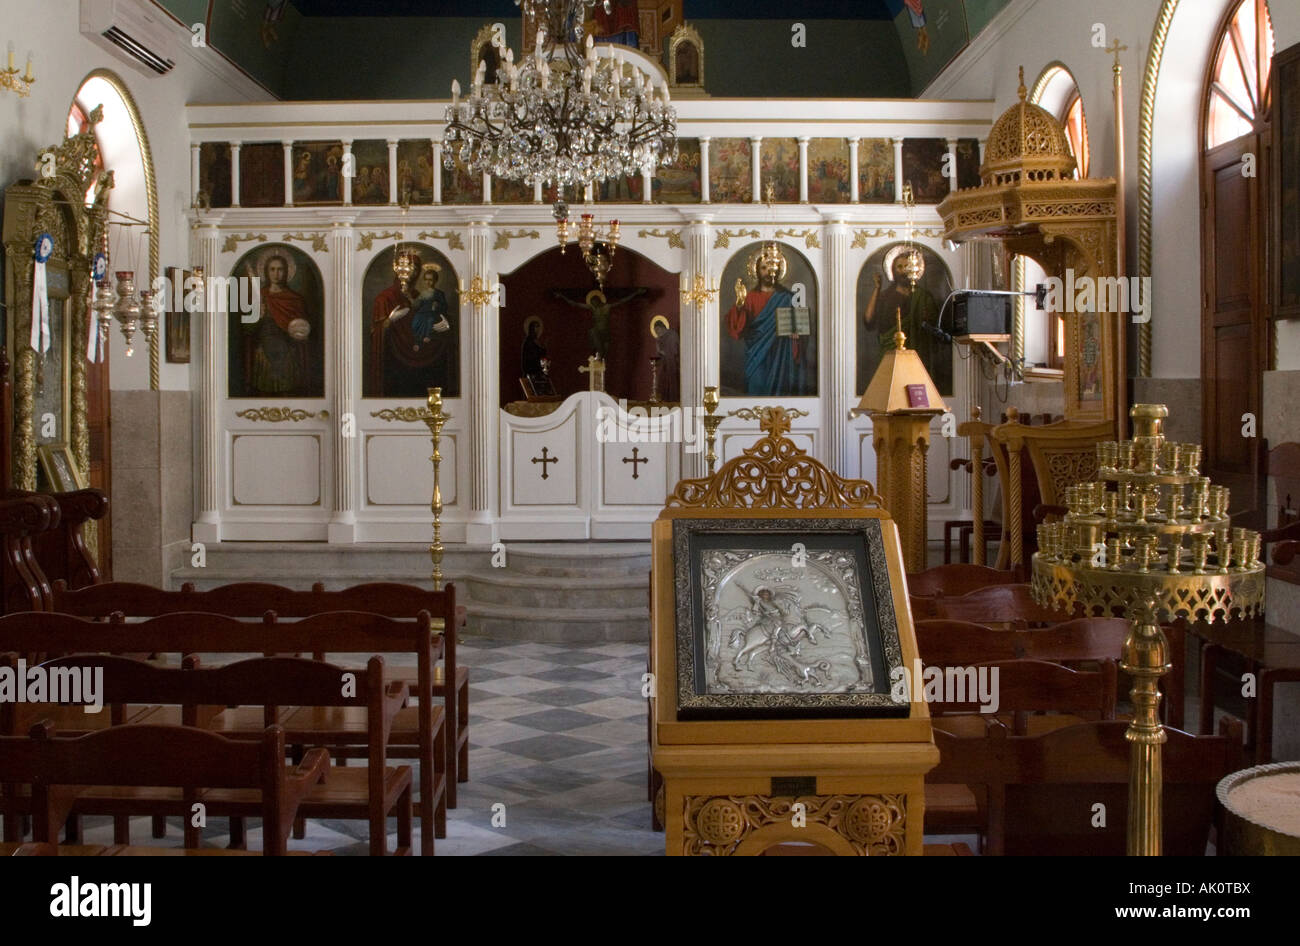 greek orthodox christianity icon saint stockfotos greek. Black Bedroom Furniture Sets. Home Design Ideas